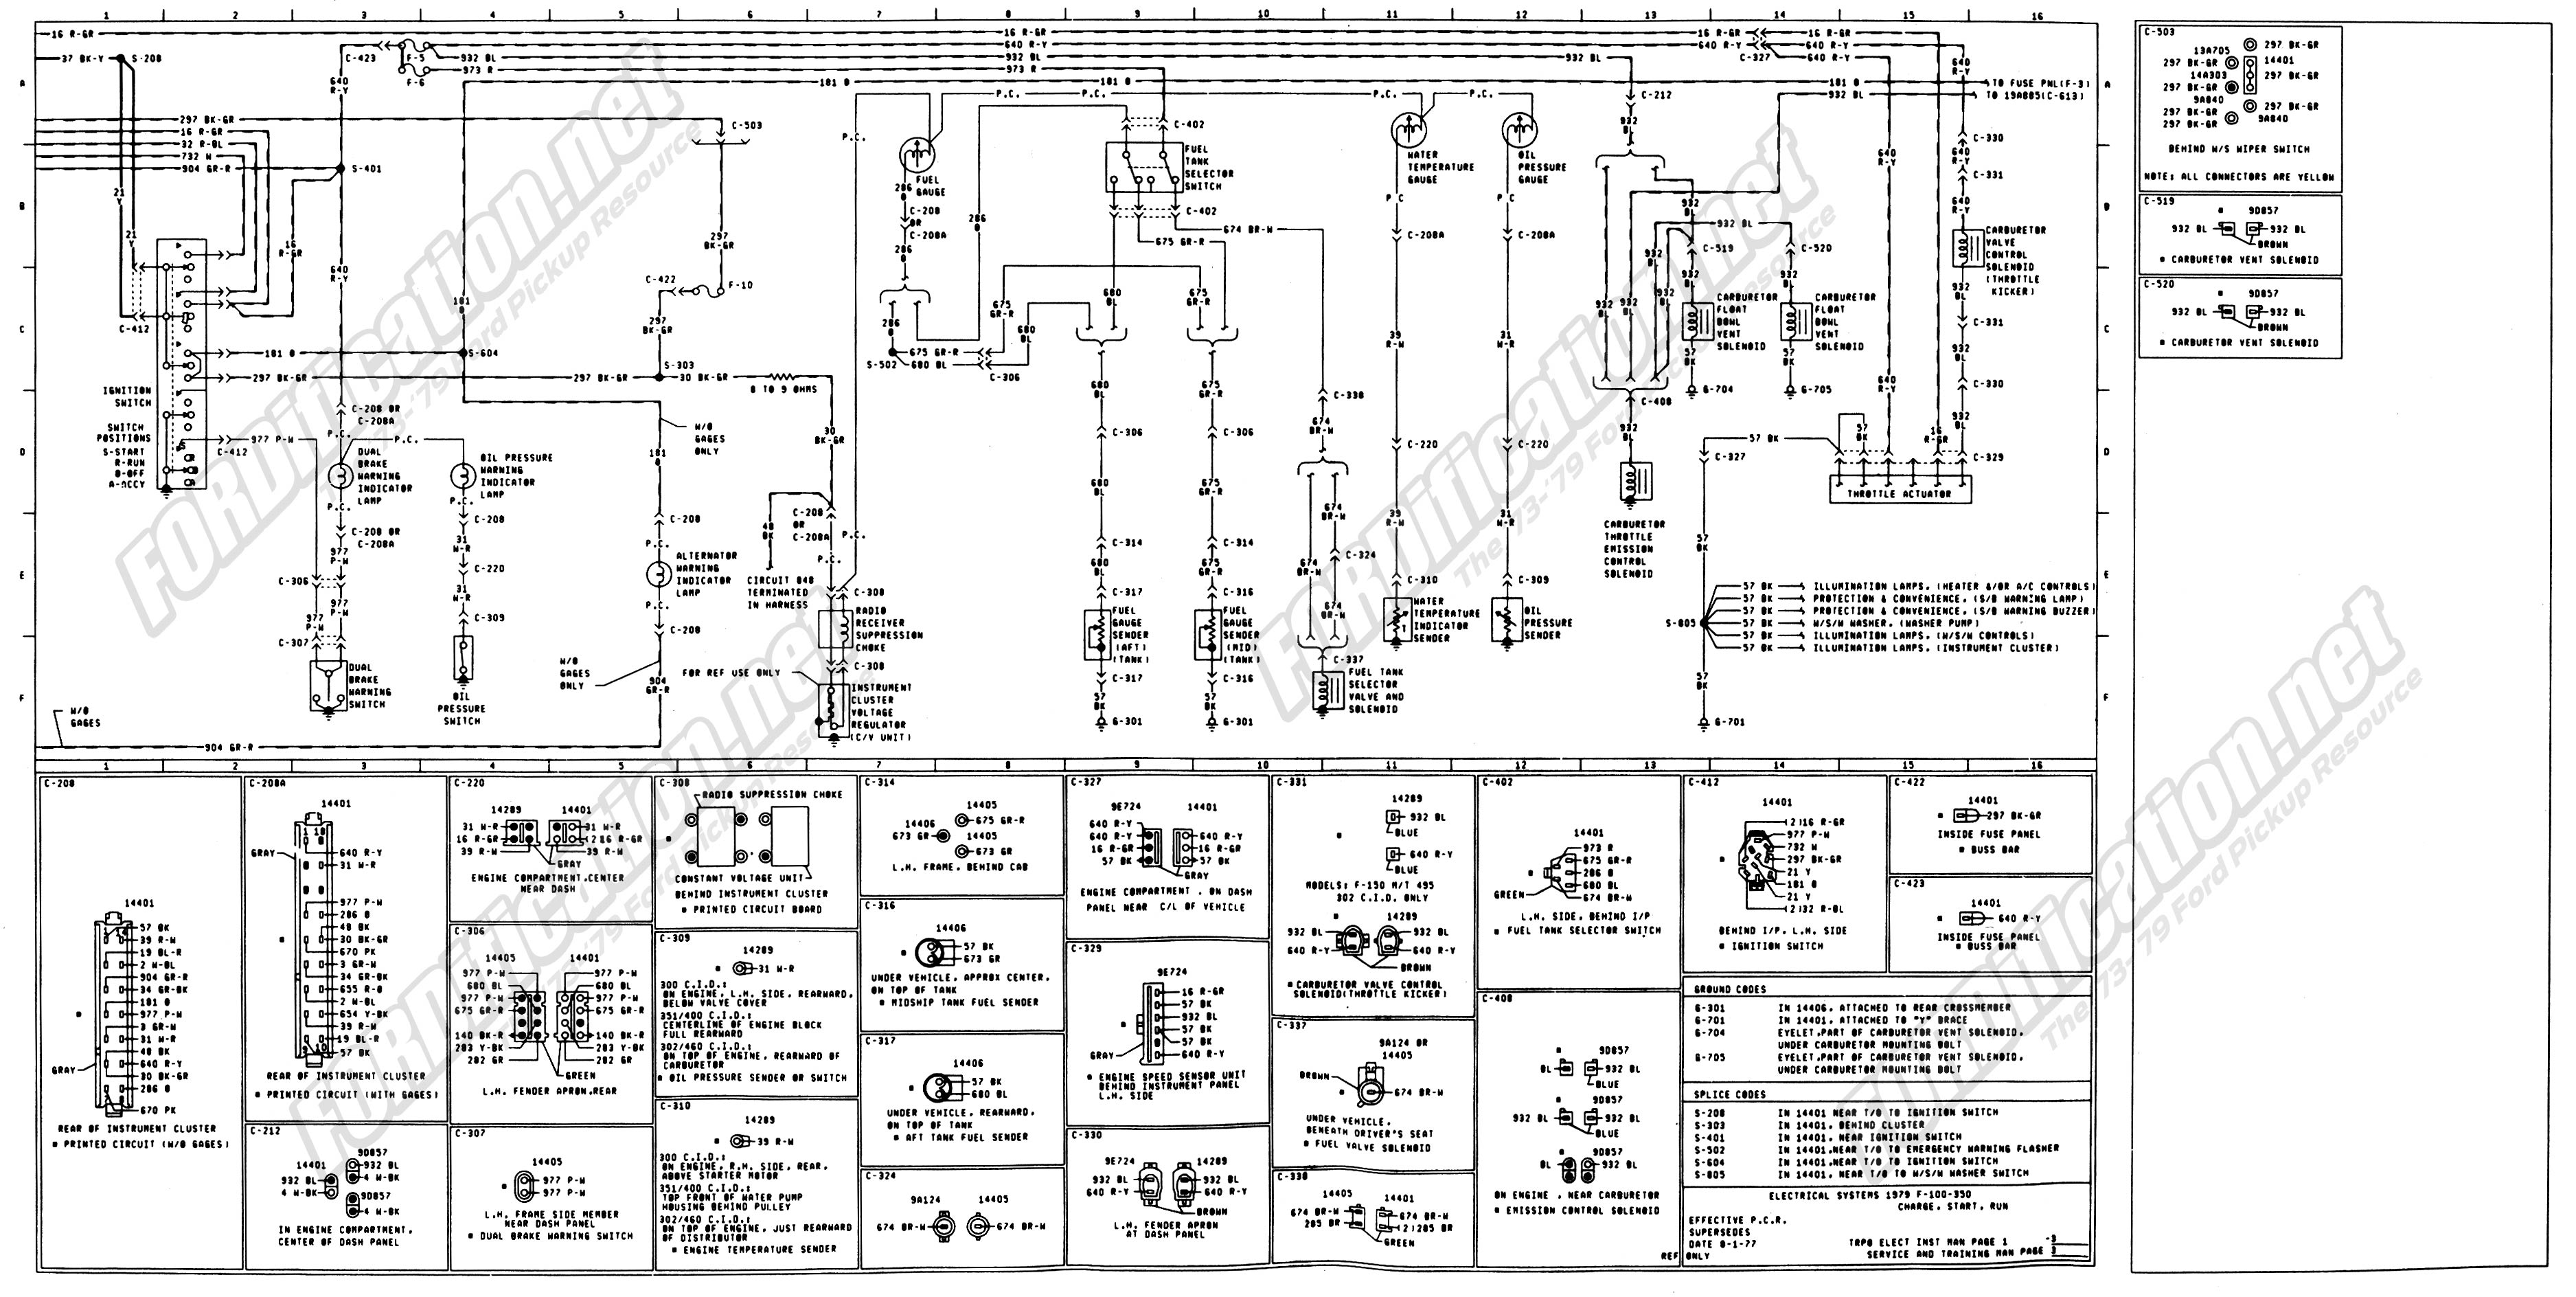 wiring_79master_3of9 1973 1979 ford truck wiring diagrams & schematics fordification net 1999 ford f350 wiring diagram at aneh.co